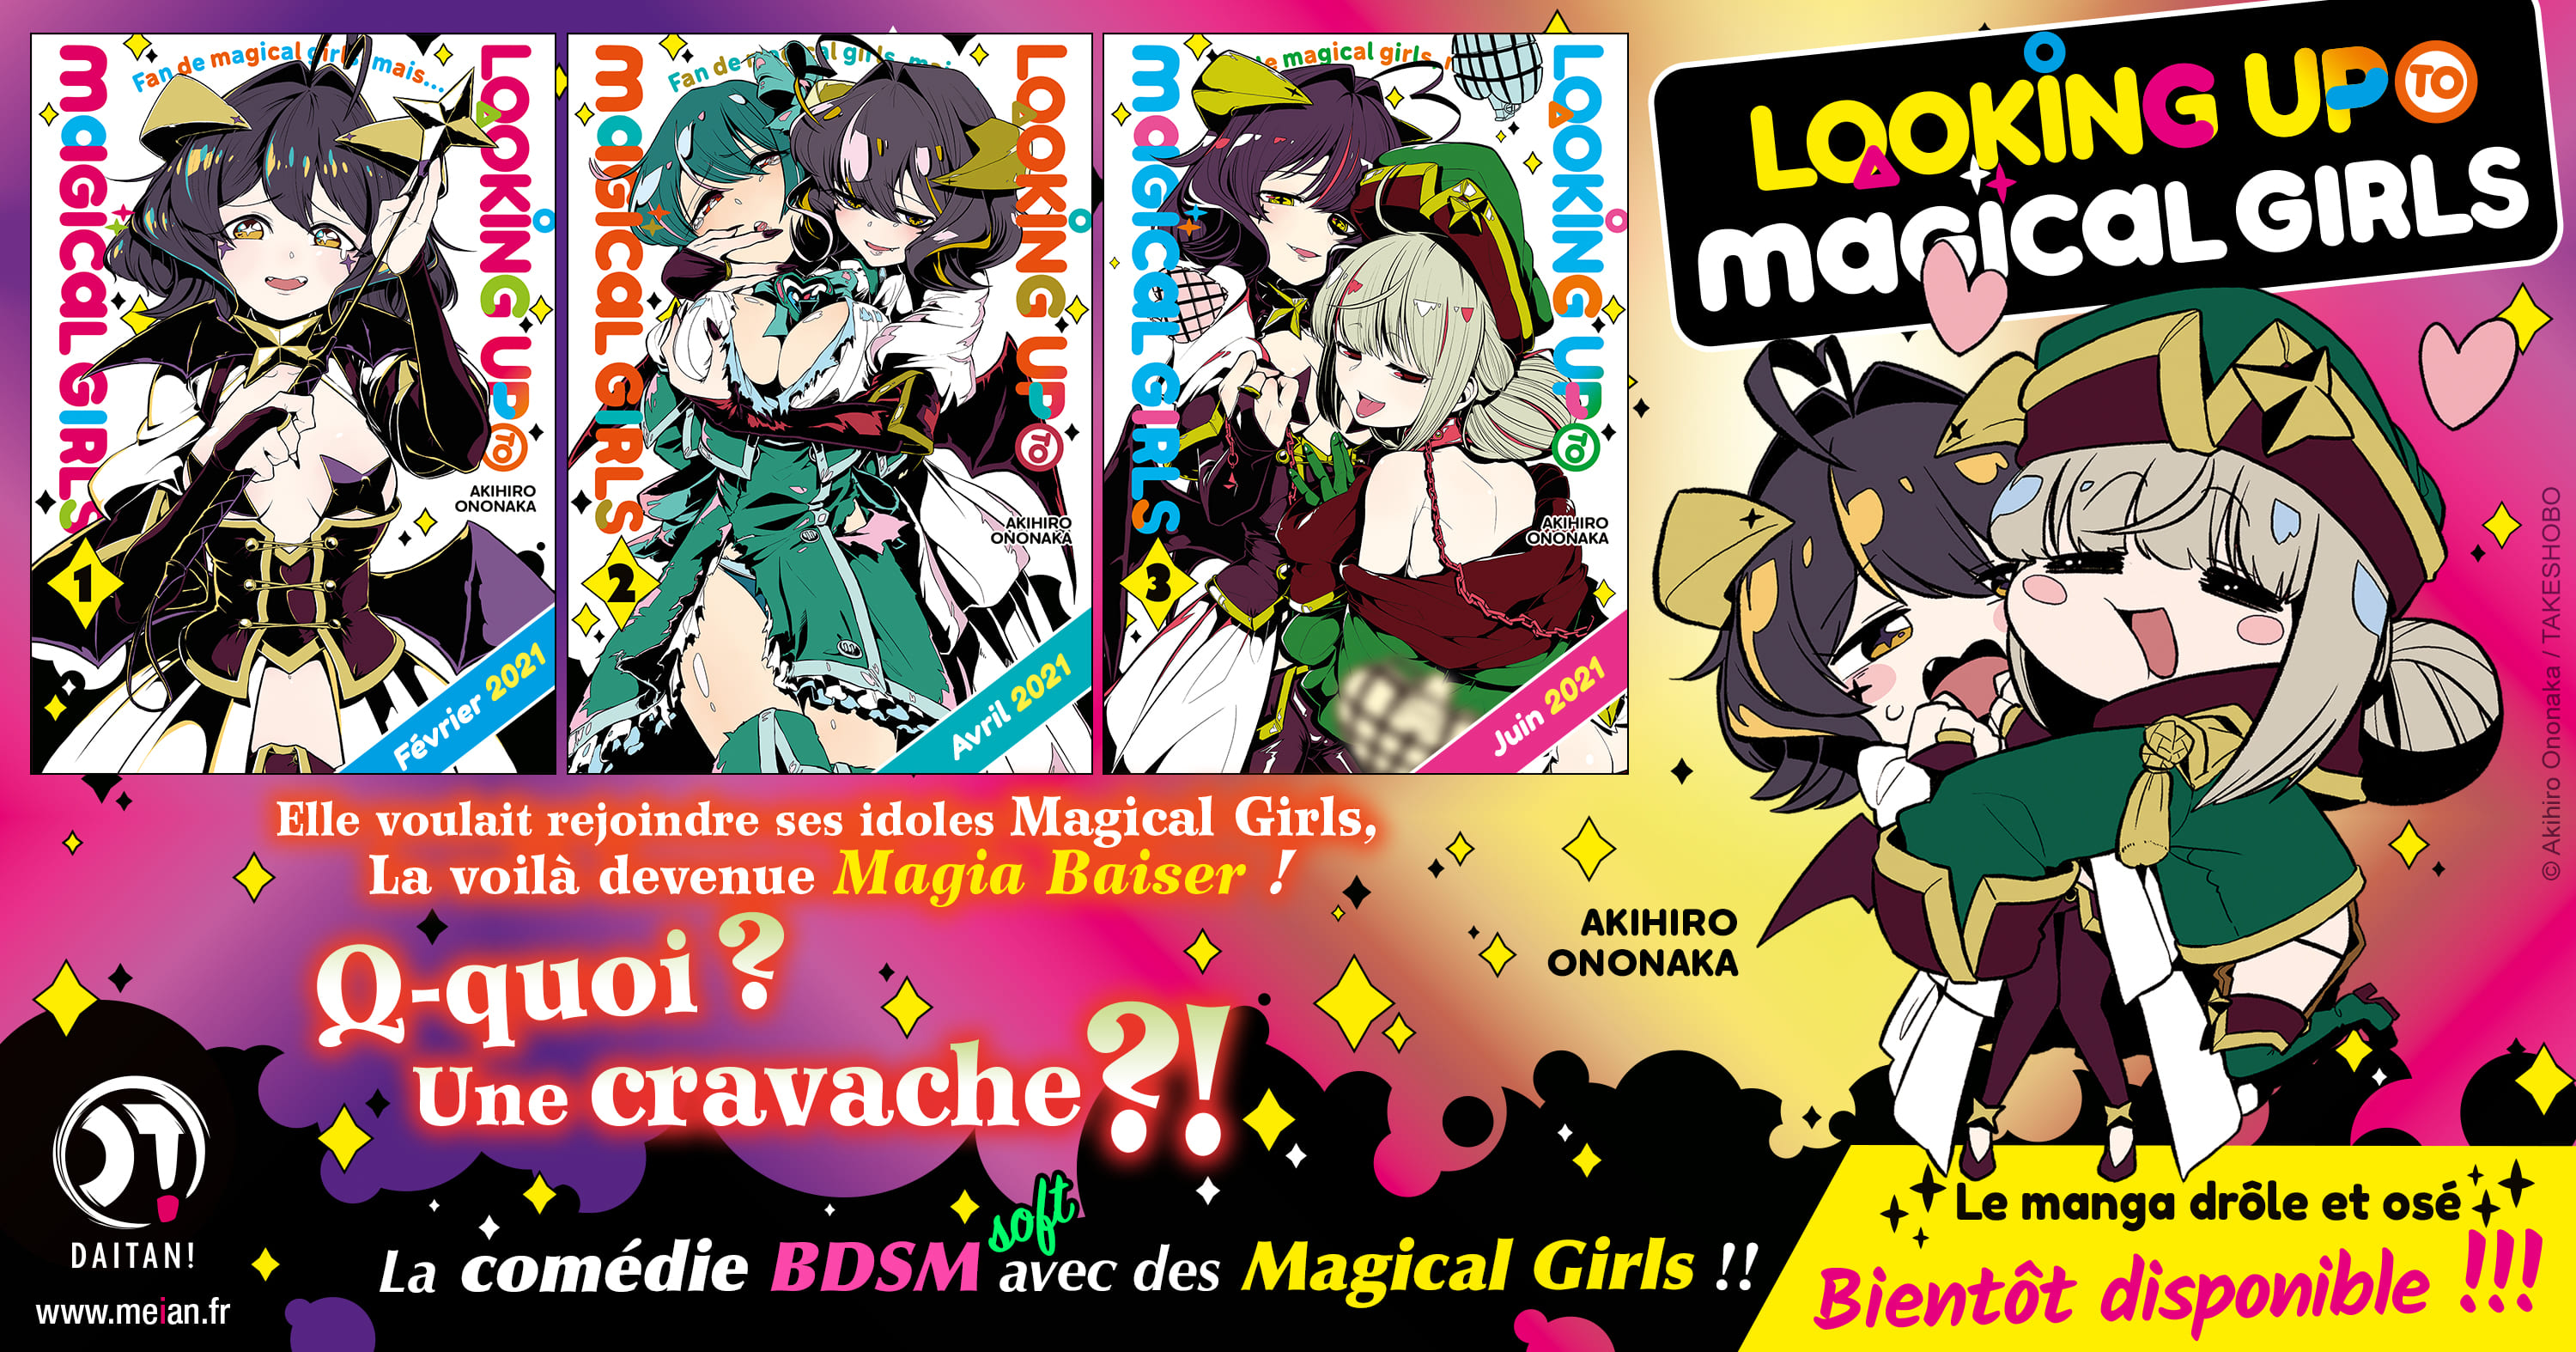 Looking Up To Magical Girls Annonce